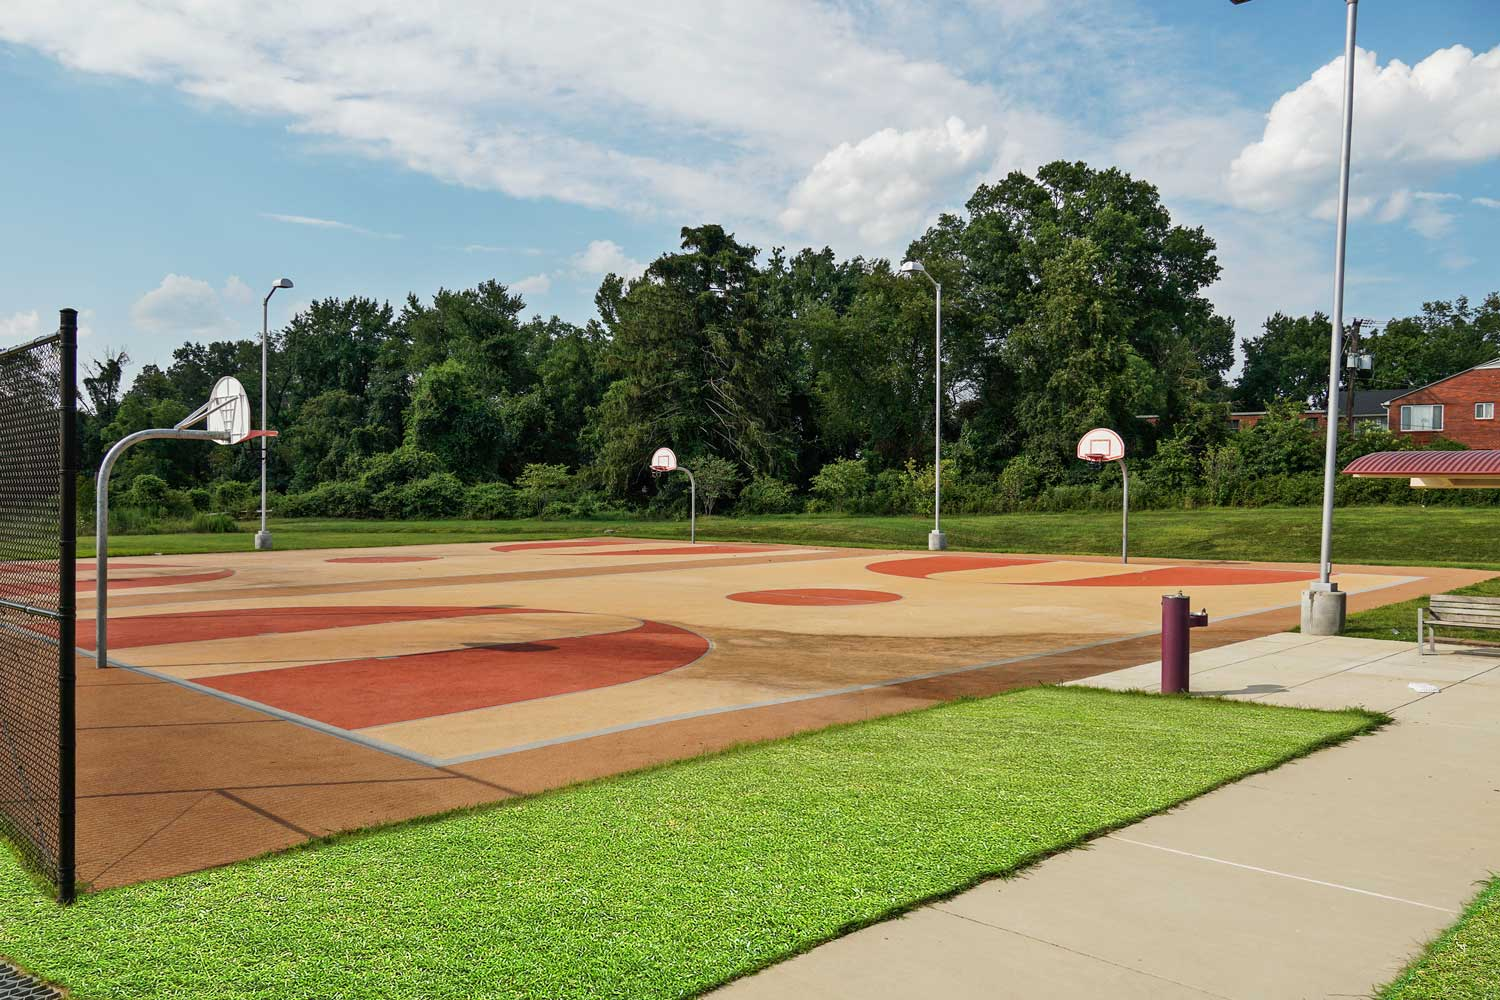 Basketball court 5 minutes from Columbia Park Apartments in Landover, MD